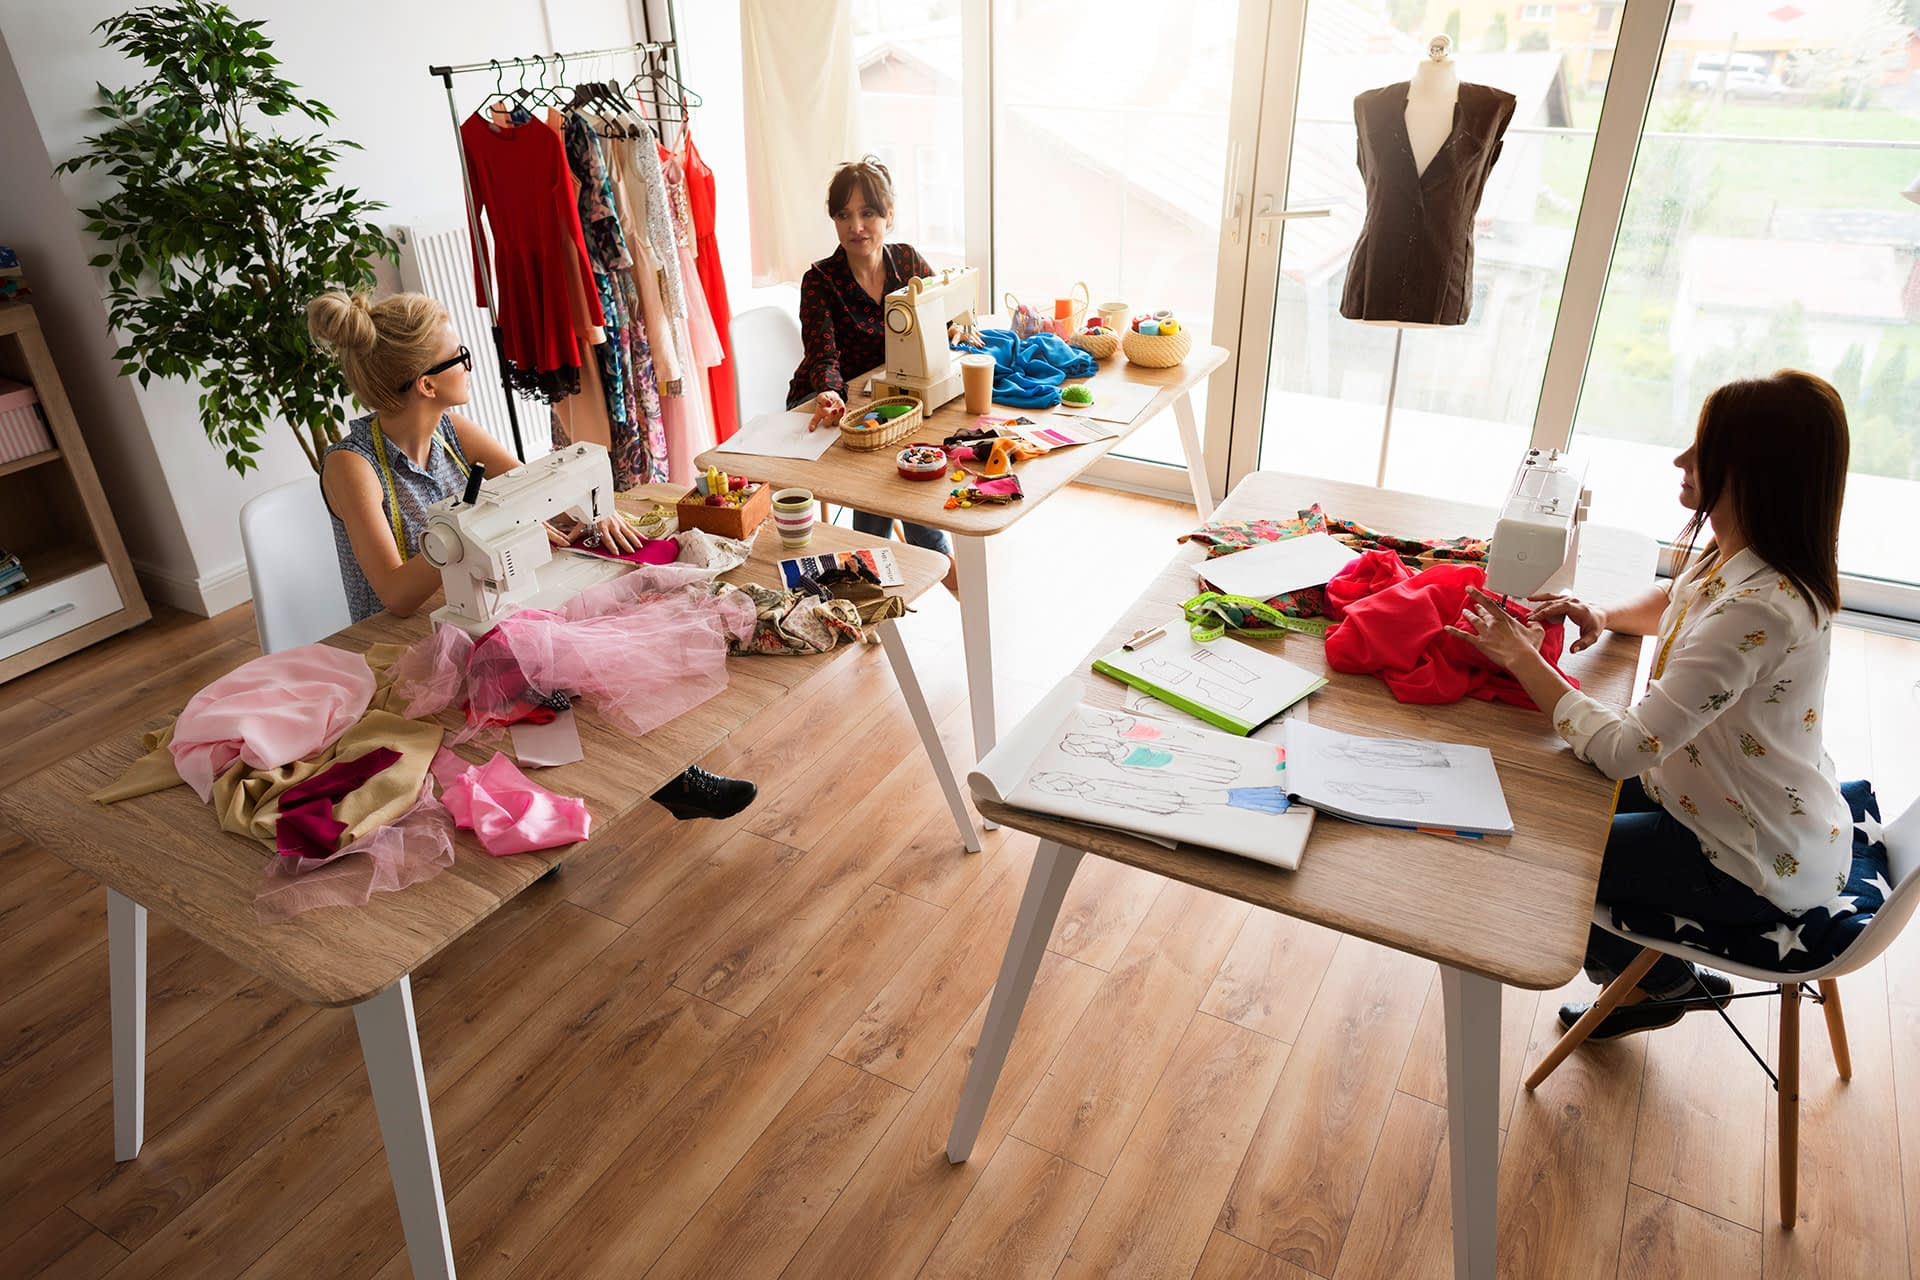 Female fashion designers are making clothes in a cozy workshop.